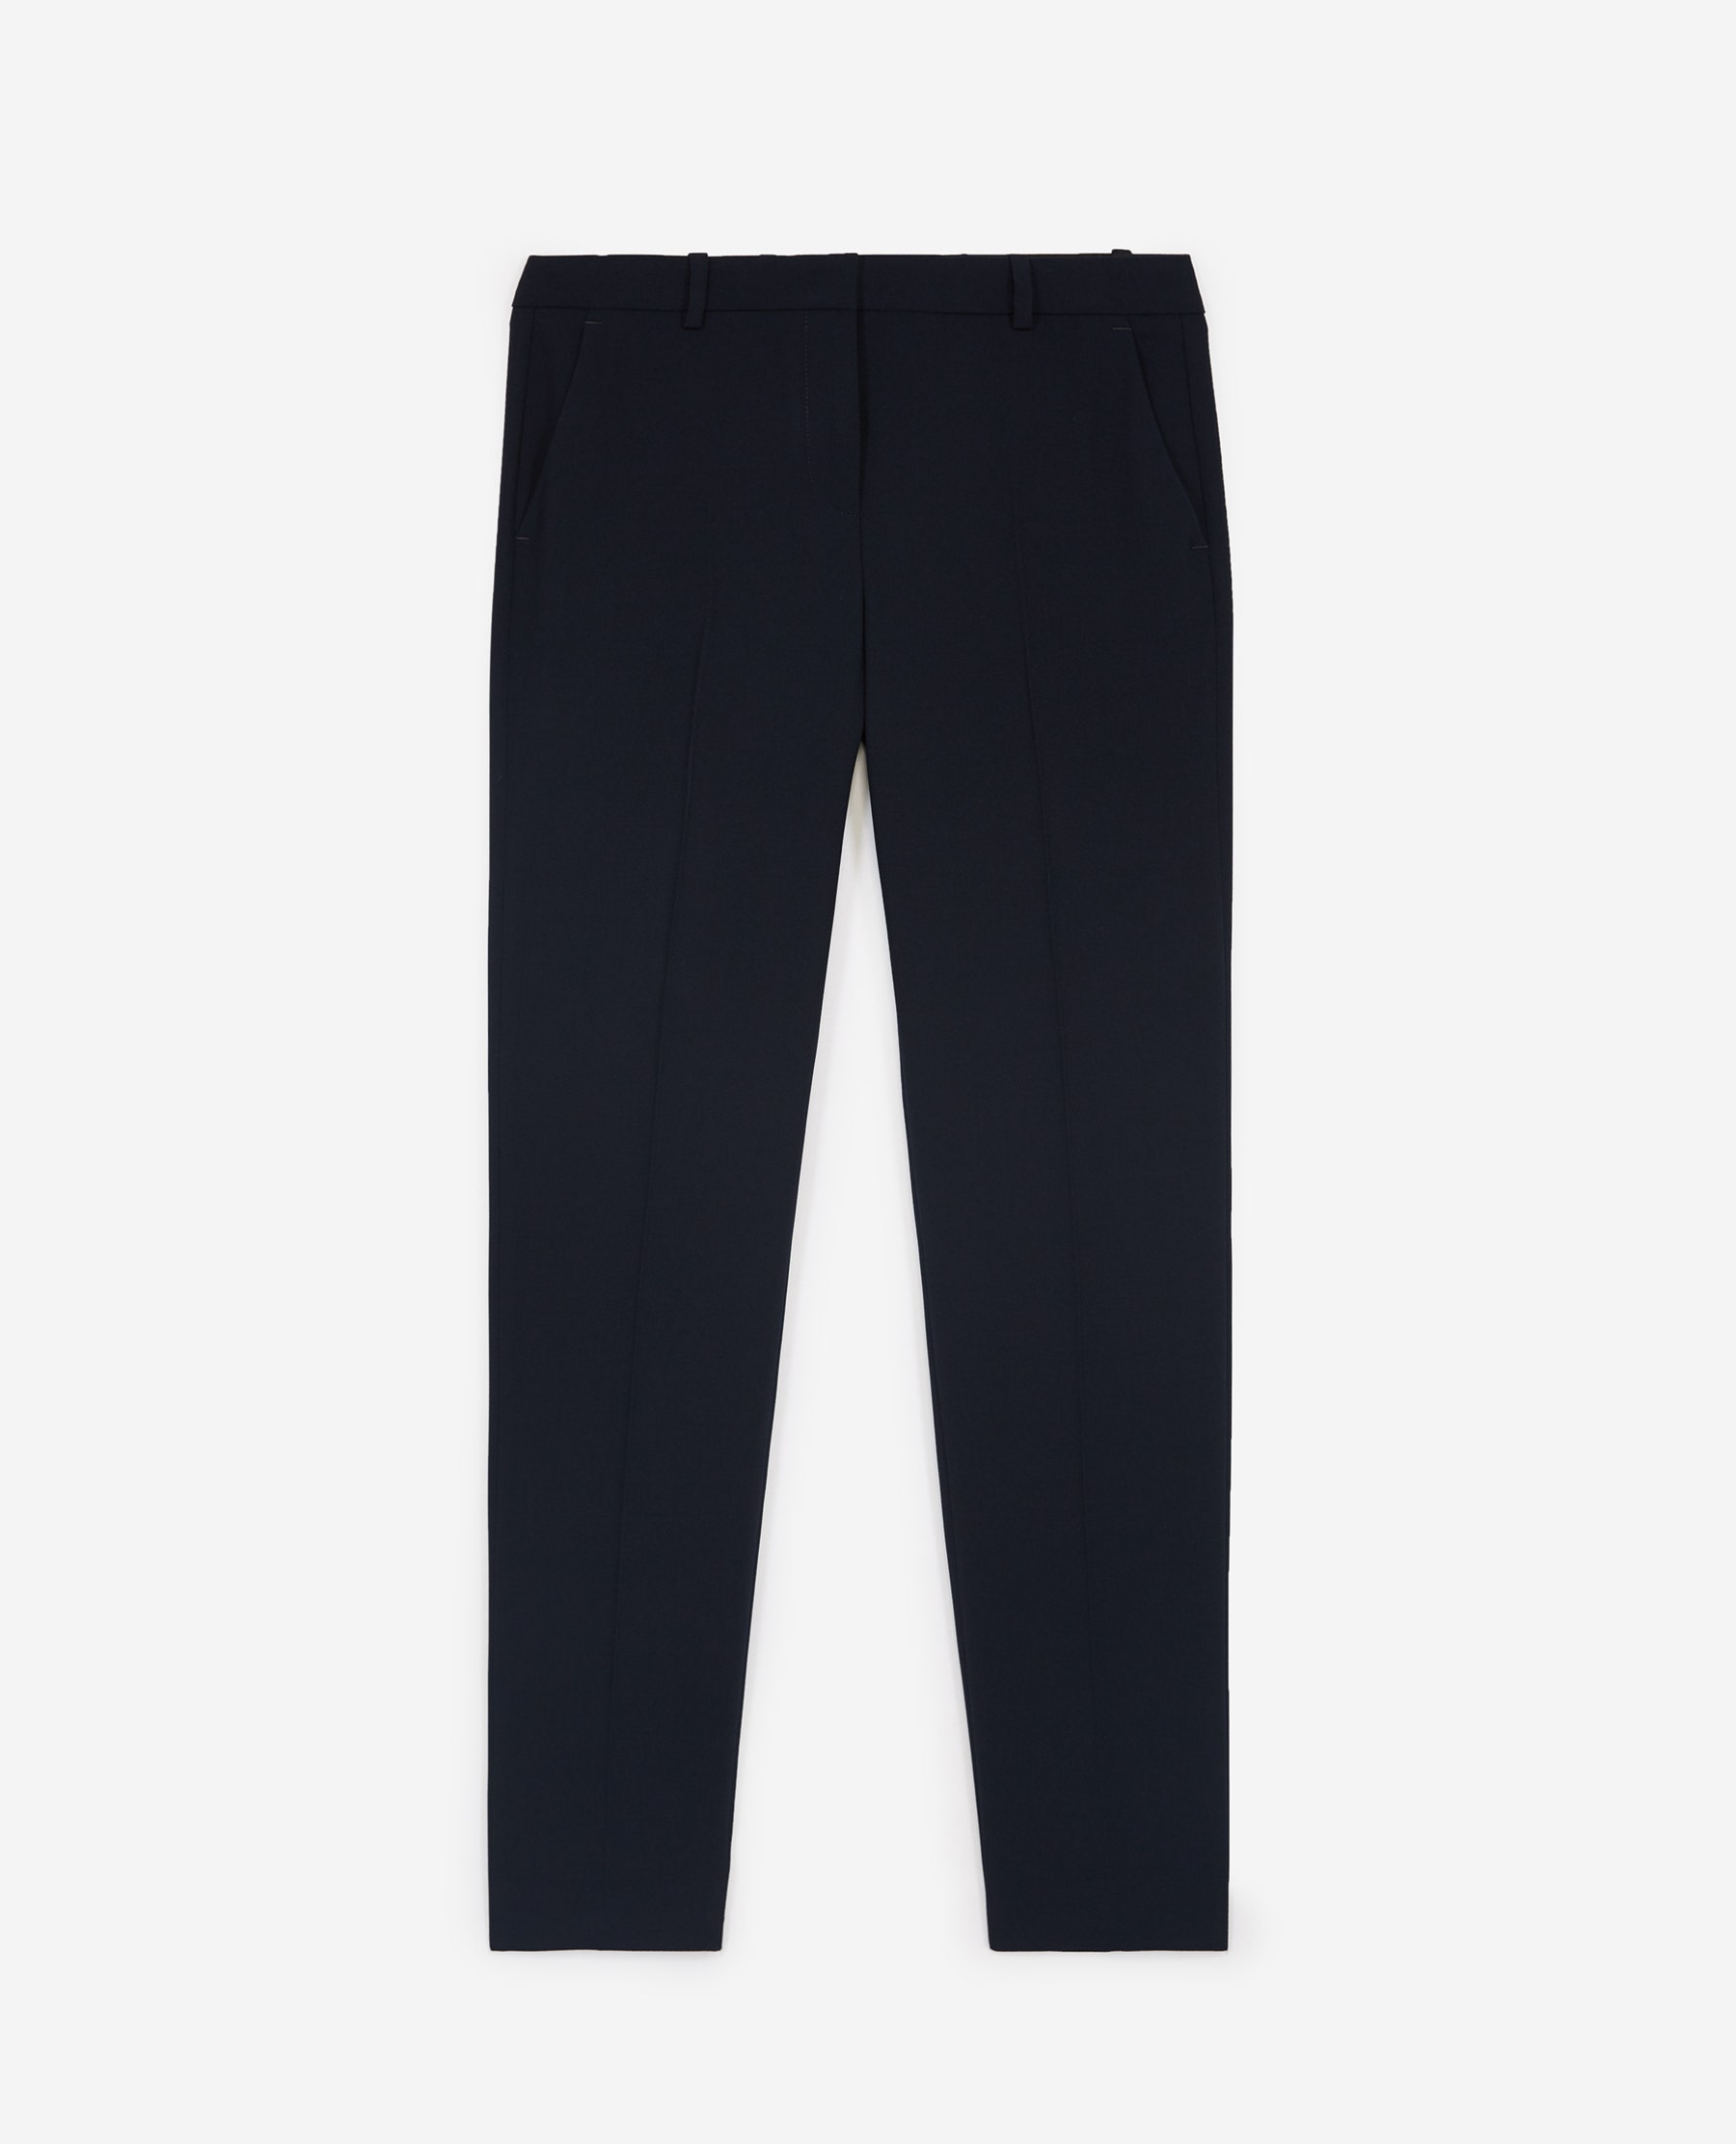 Pantalon fluide bleu marine costume - The Kooples - Modalova